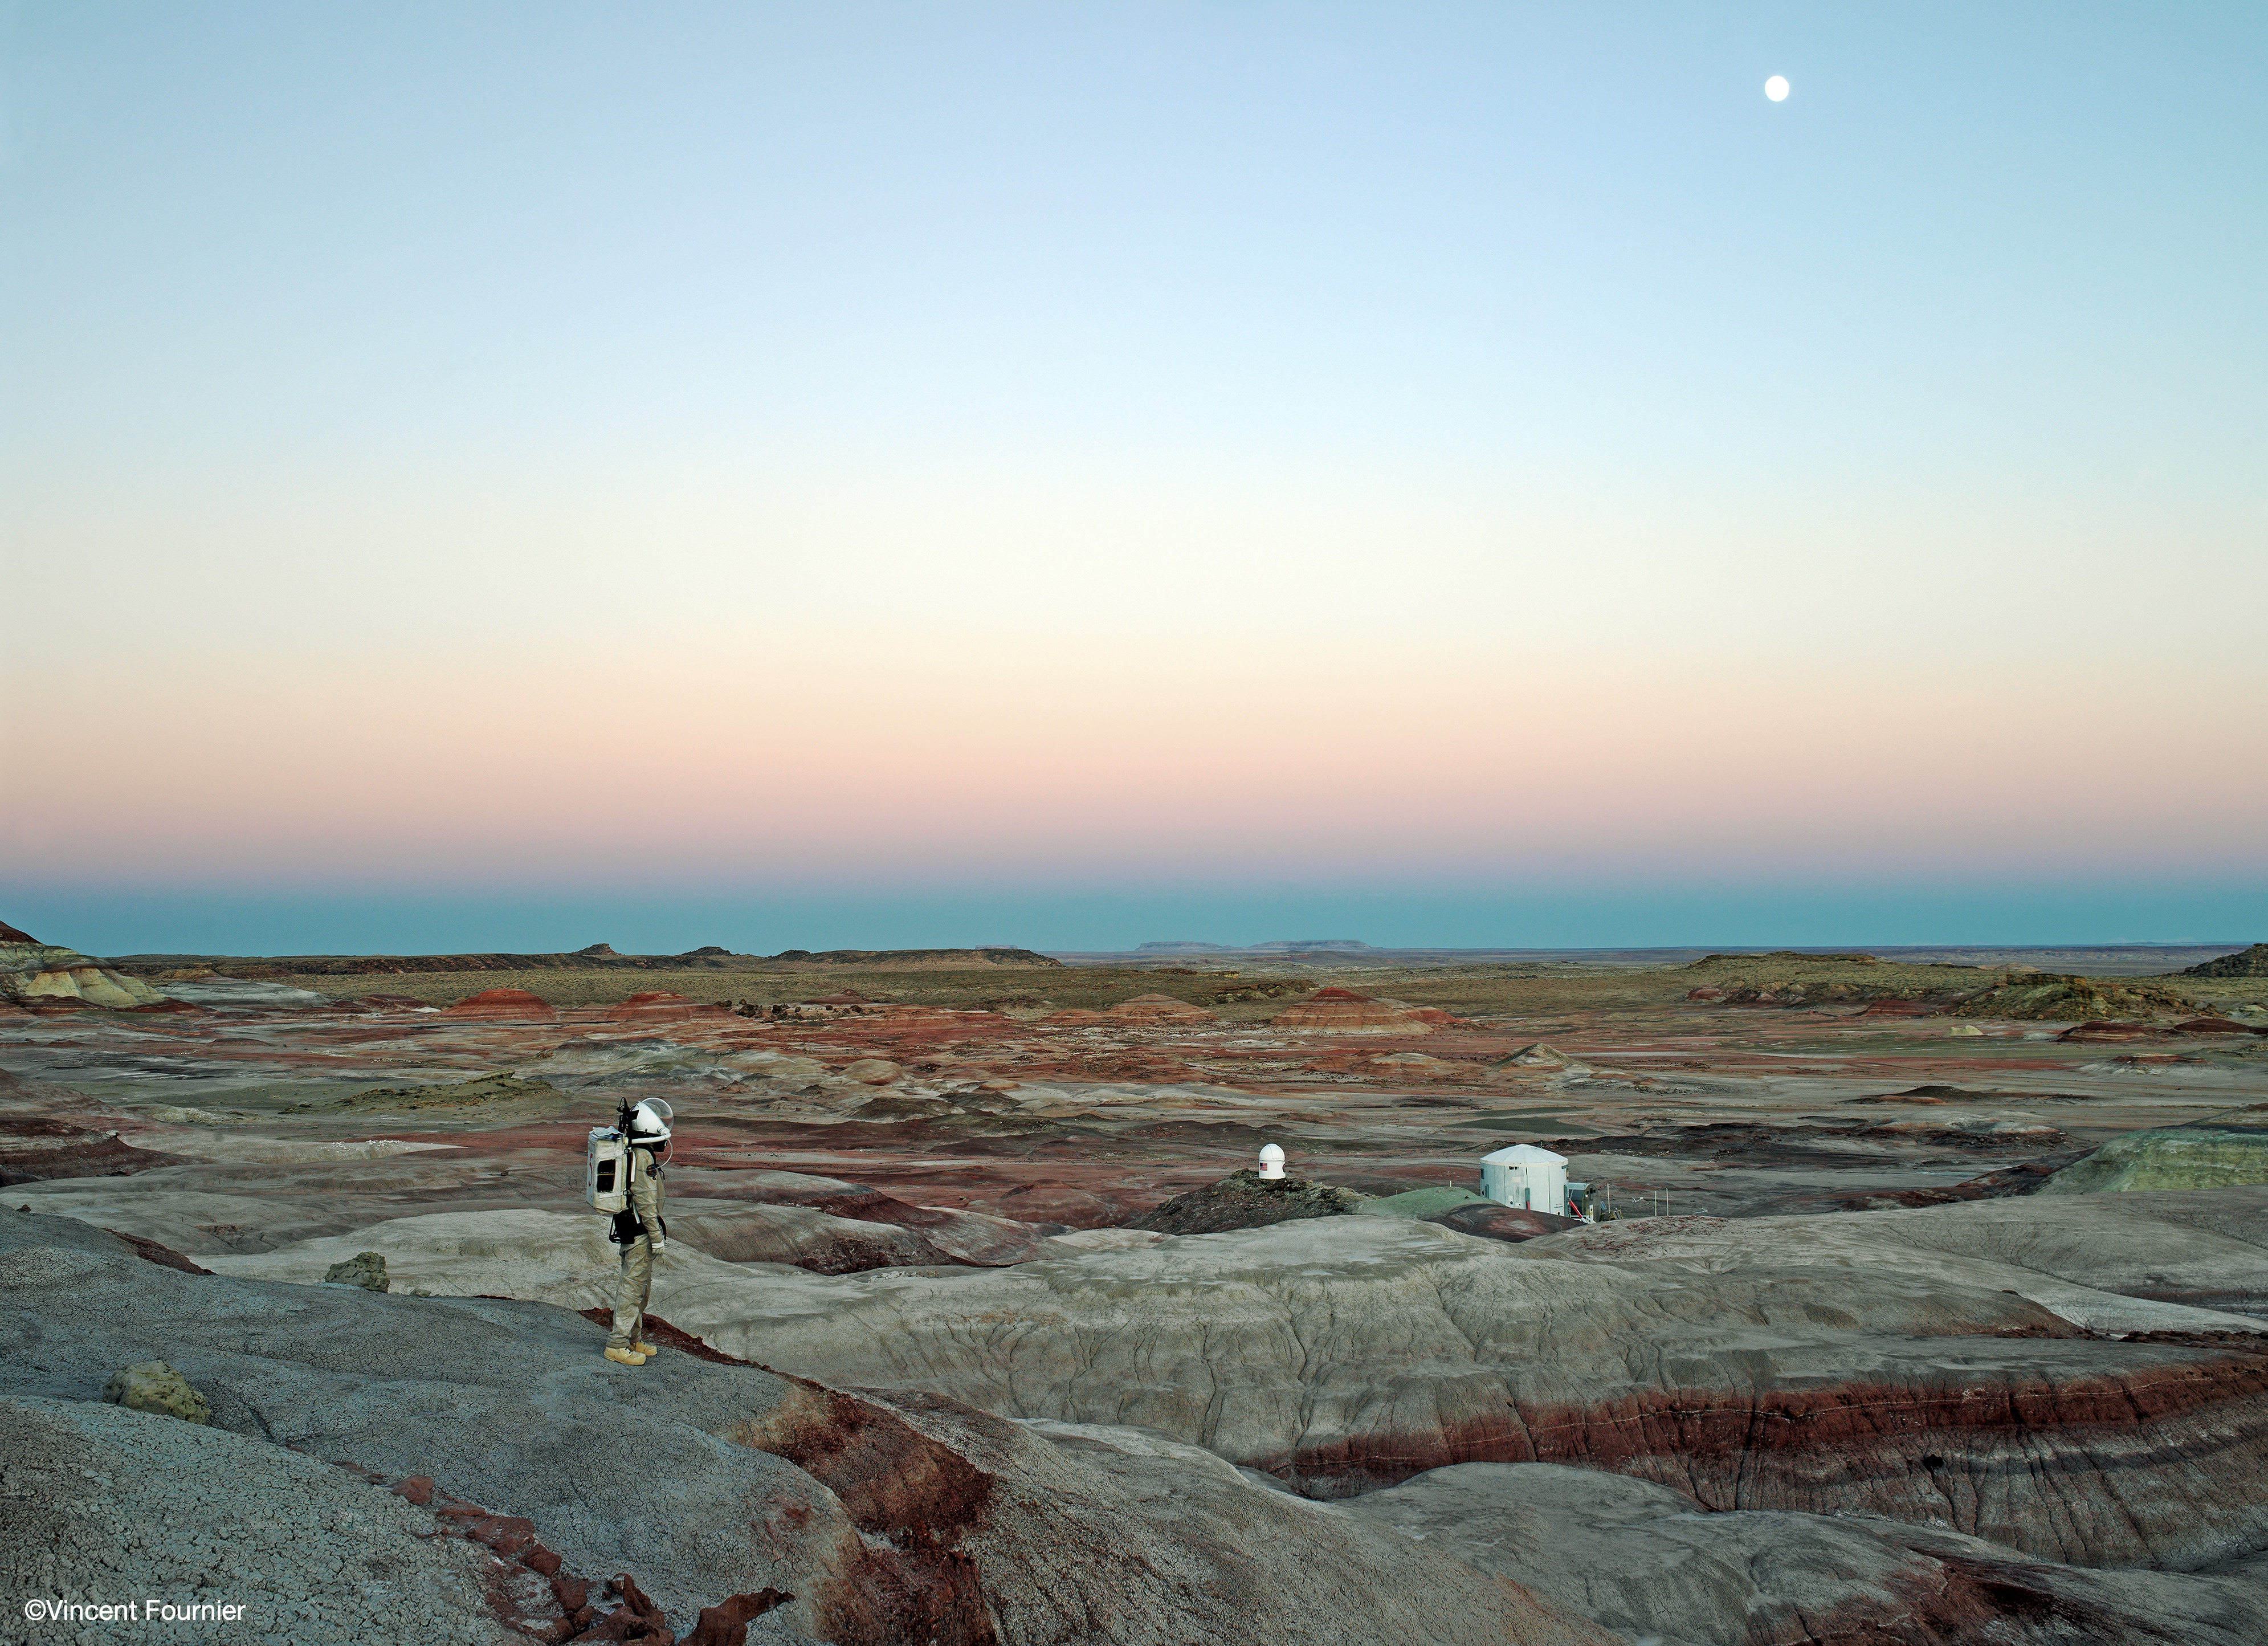 Vincent fournier - MDRS-11